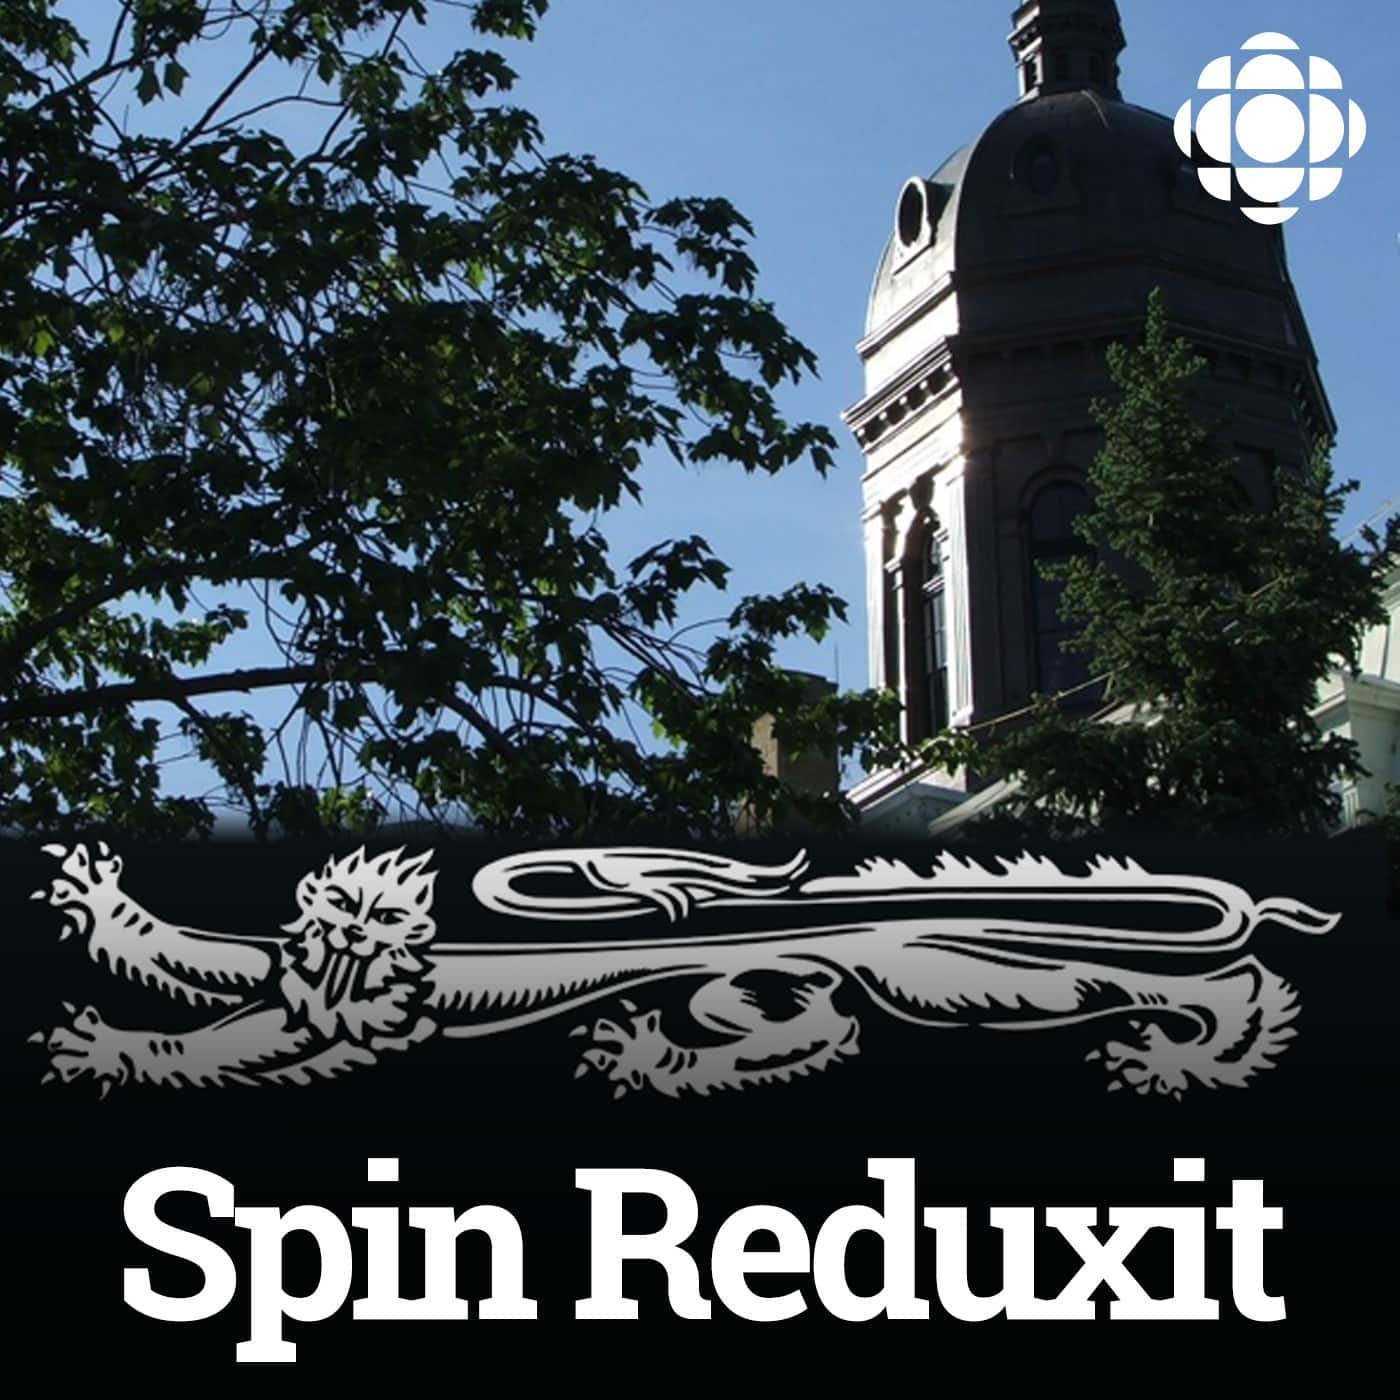 Spin Reduxit from CBC Radio New Brunswick